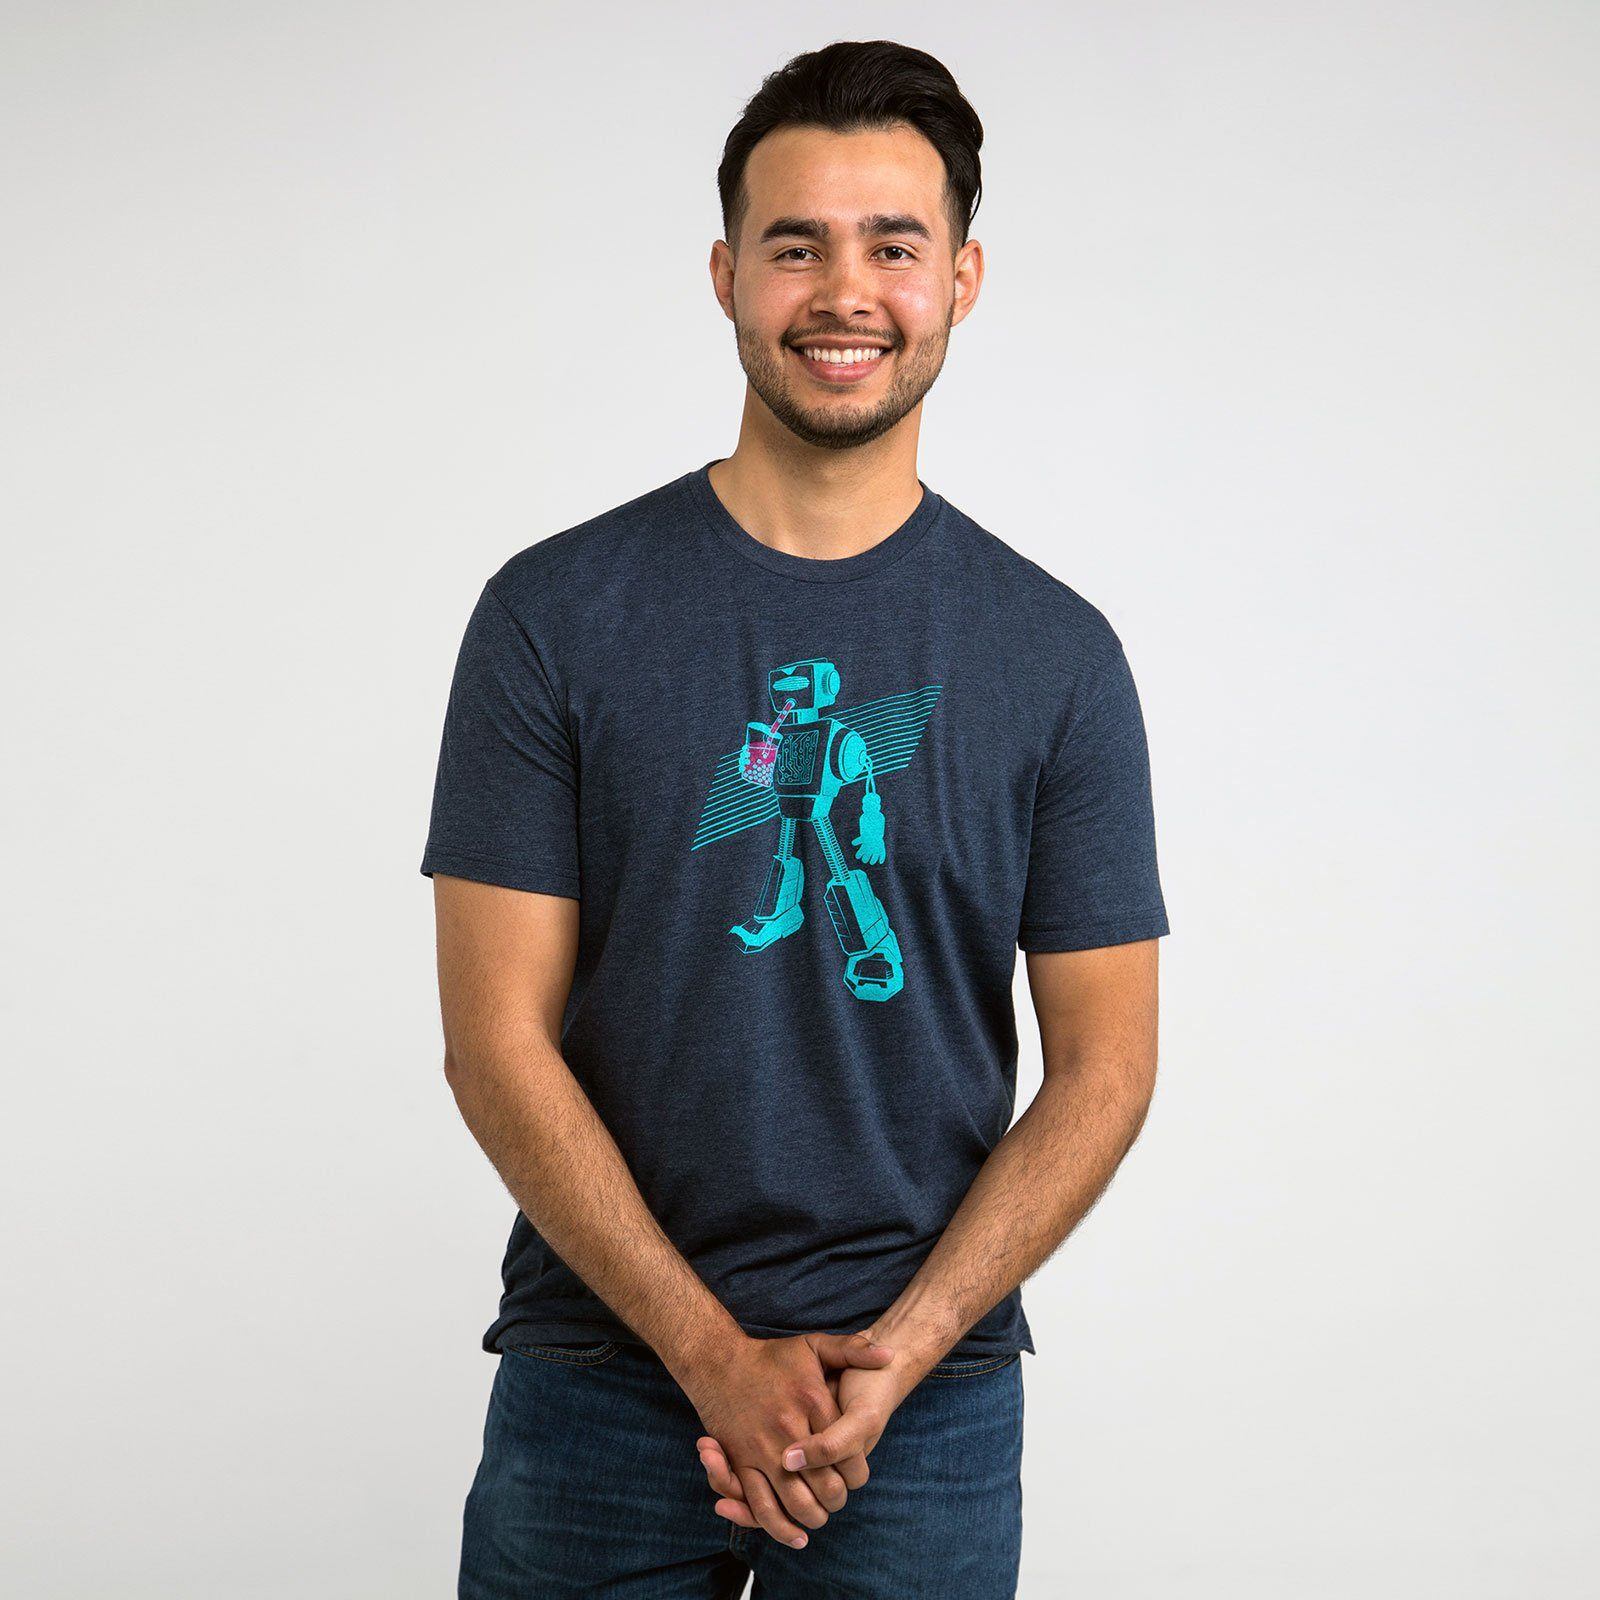 Boba Bot Tech T-shirt for engineers, scientists, robotics